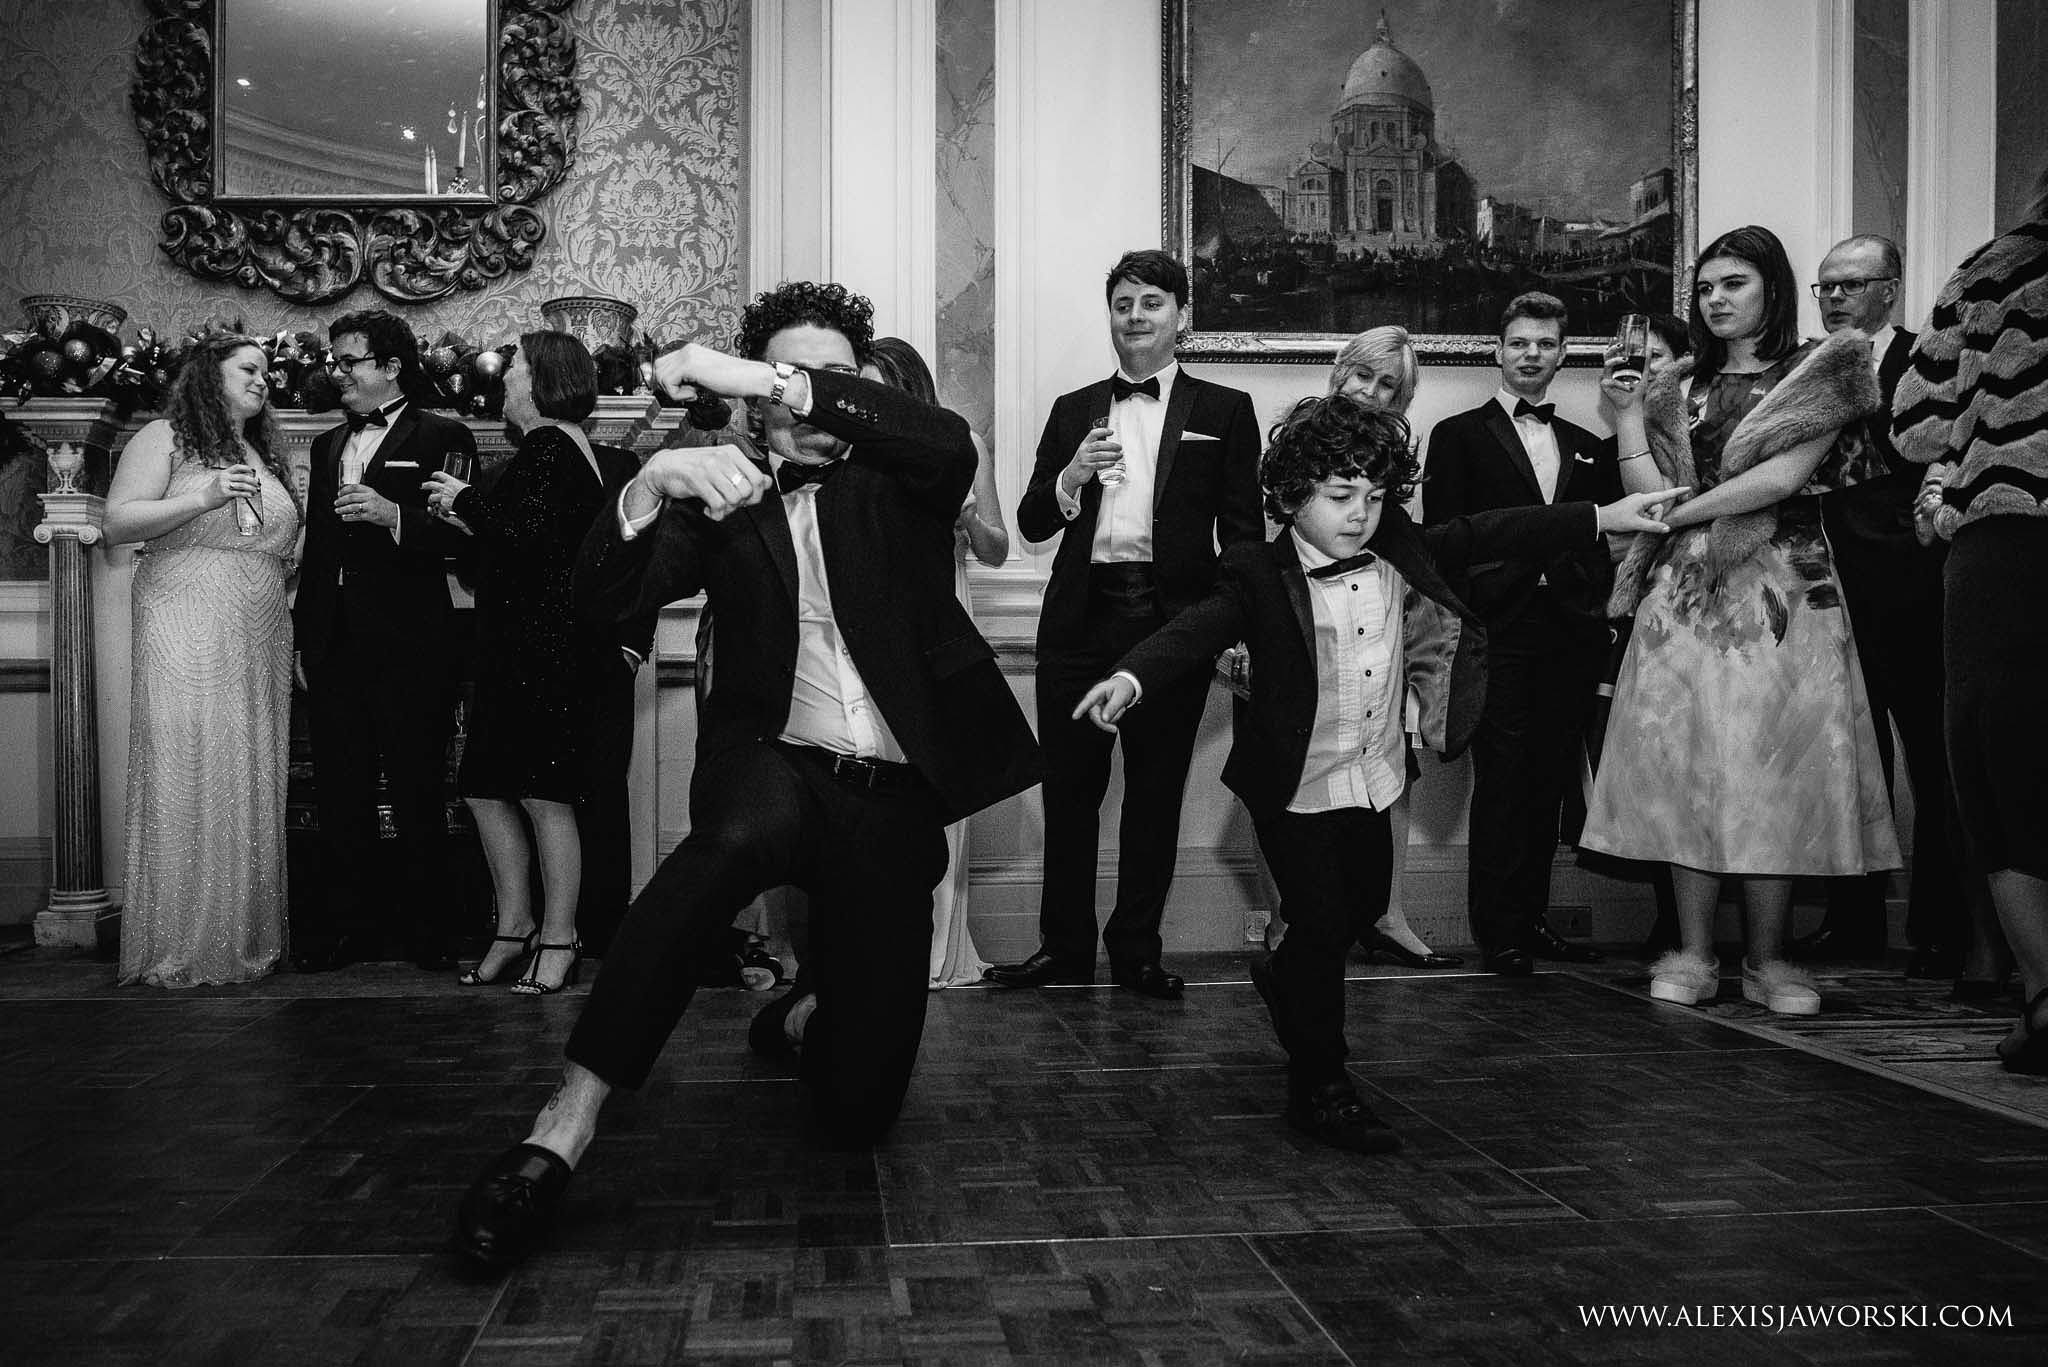 guests and boy dancing